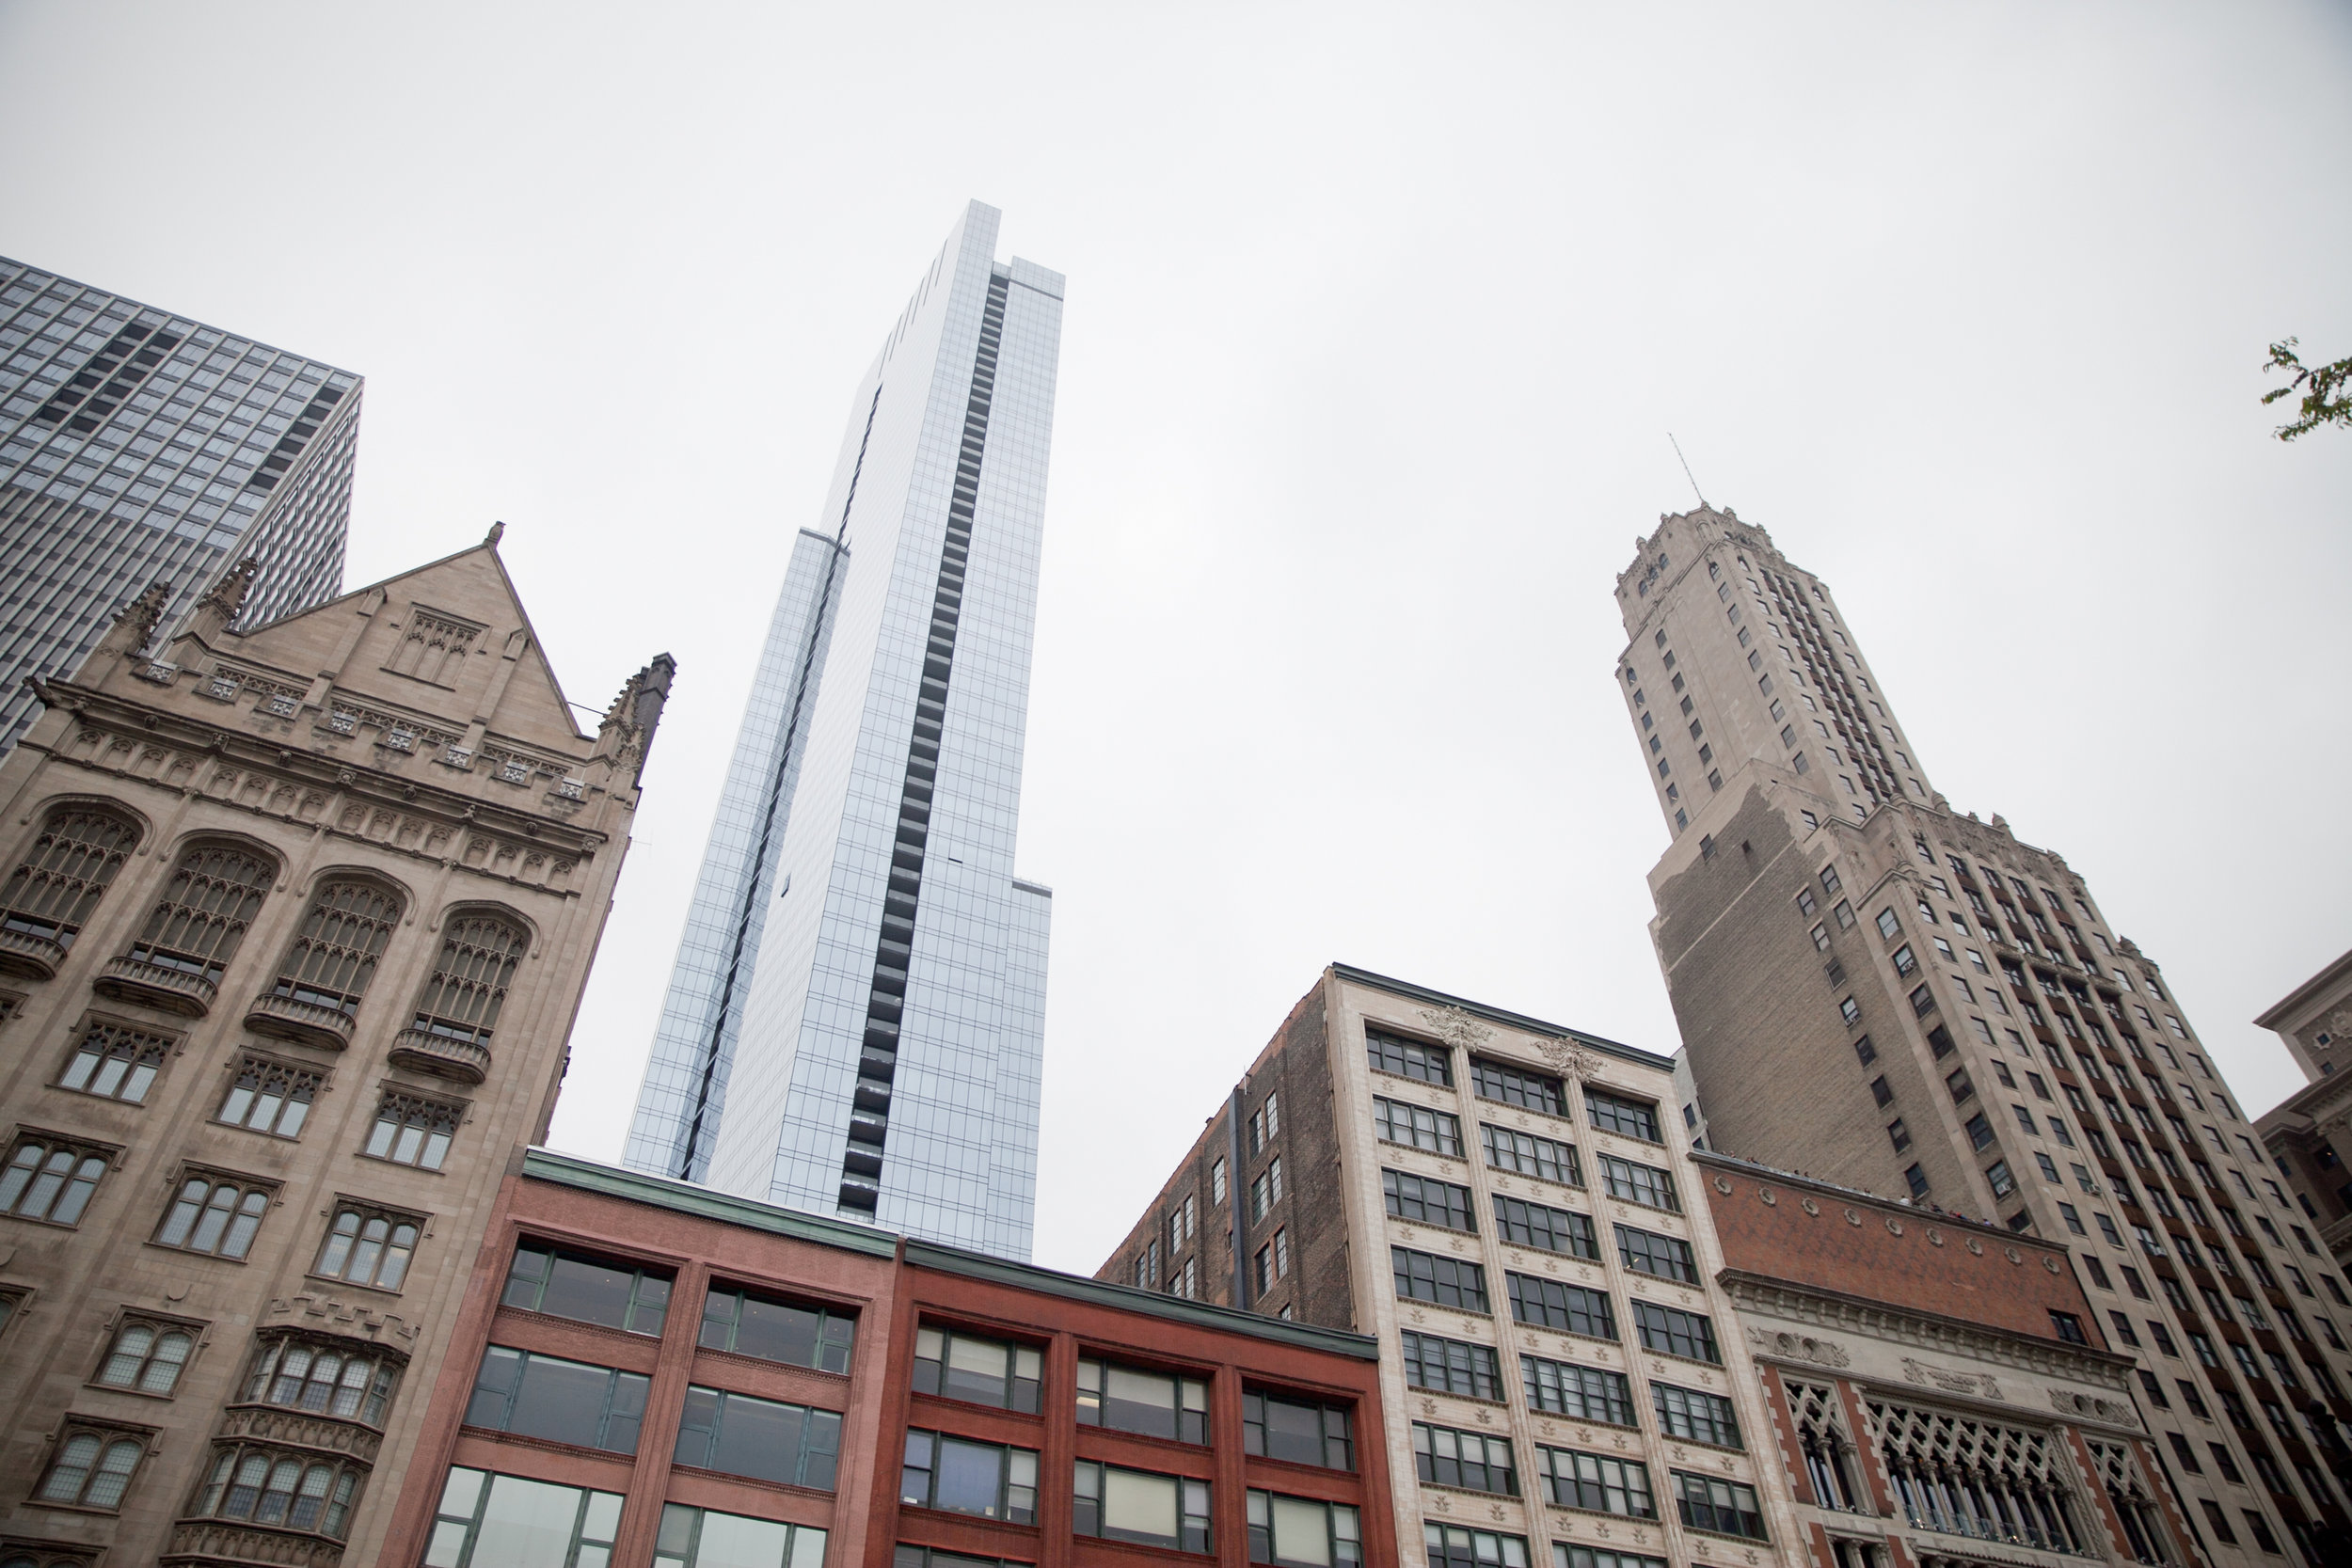 downtown rooftop bars in Chicago called Cindy's